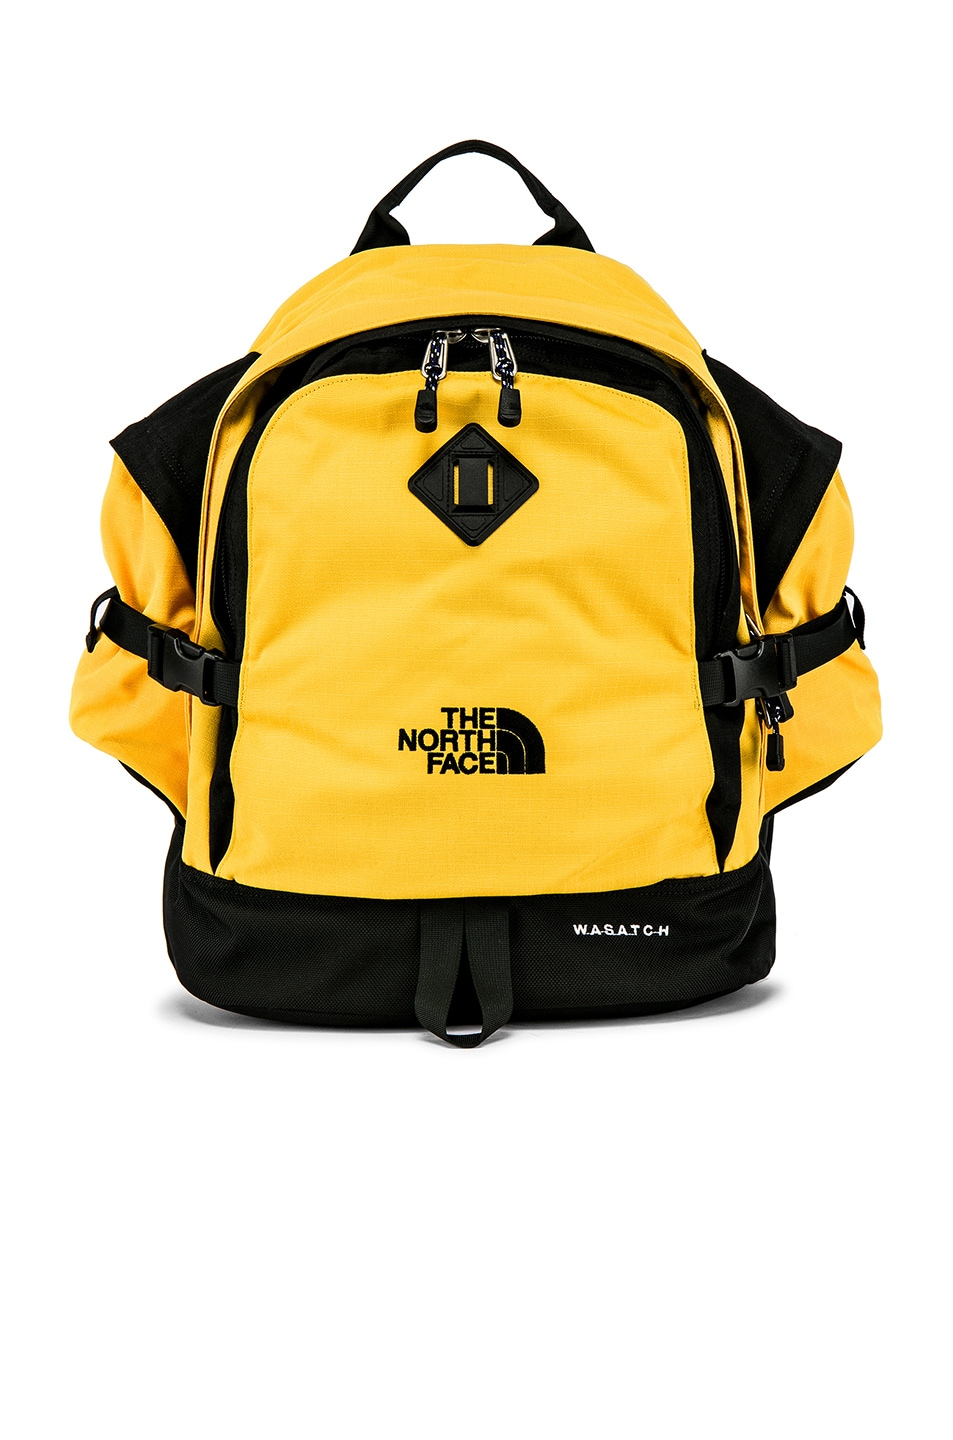 Image 1 of The North Face Wasatch Reissue Bag in TNF Yellow & TNF Black